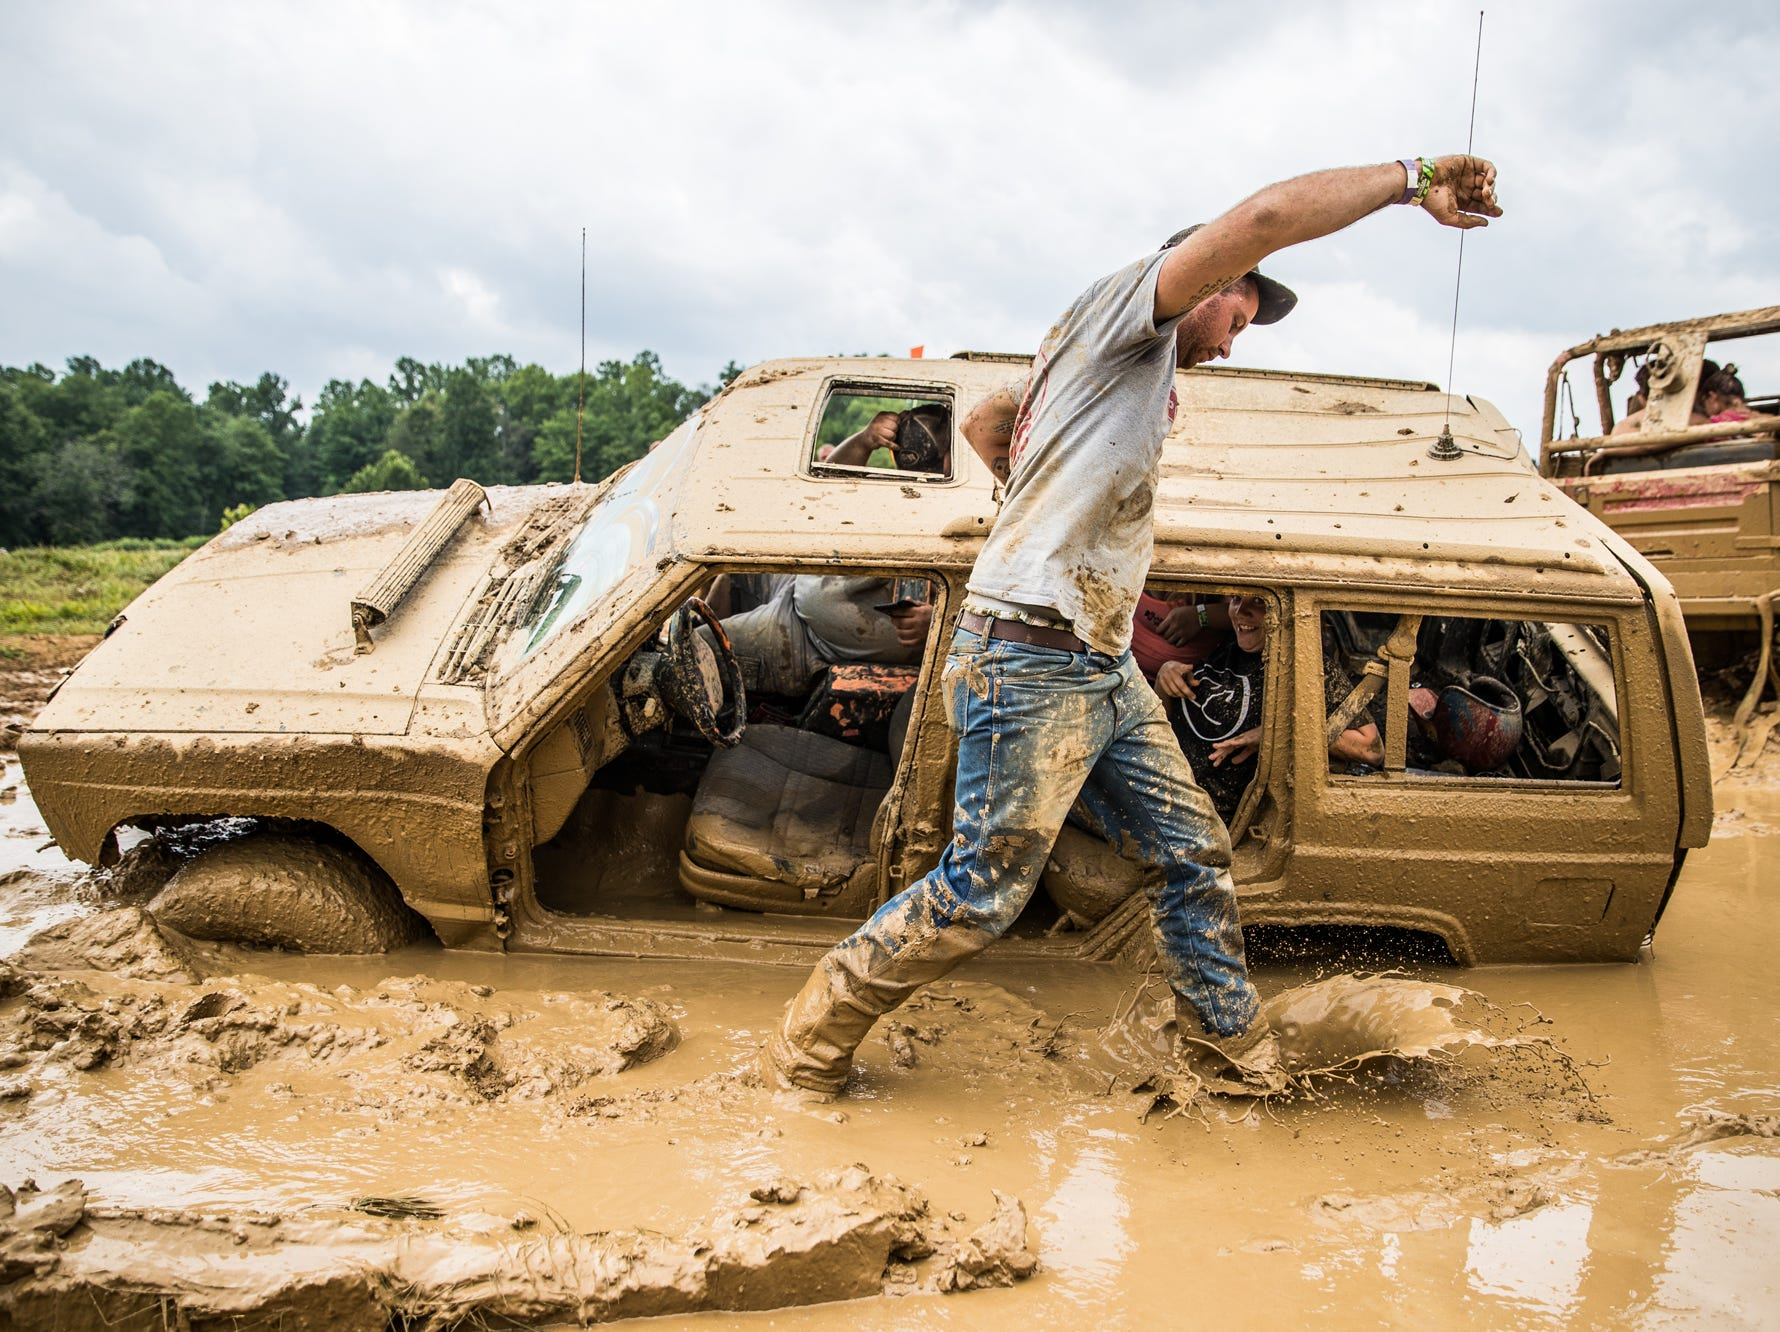 After getting stuck in the mud, a driver wades through a mess to reattac a pull cable to a Jeep Wrangler during the Redneck Rave at BlackSwan Mudpit in Medora, Ind., on Friday, July 20, 2018.